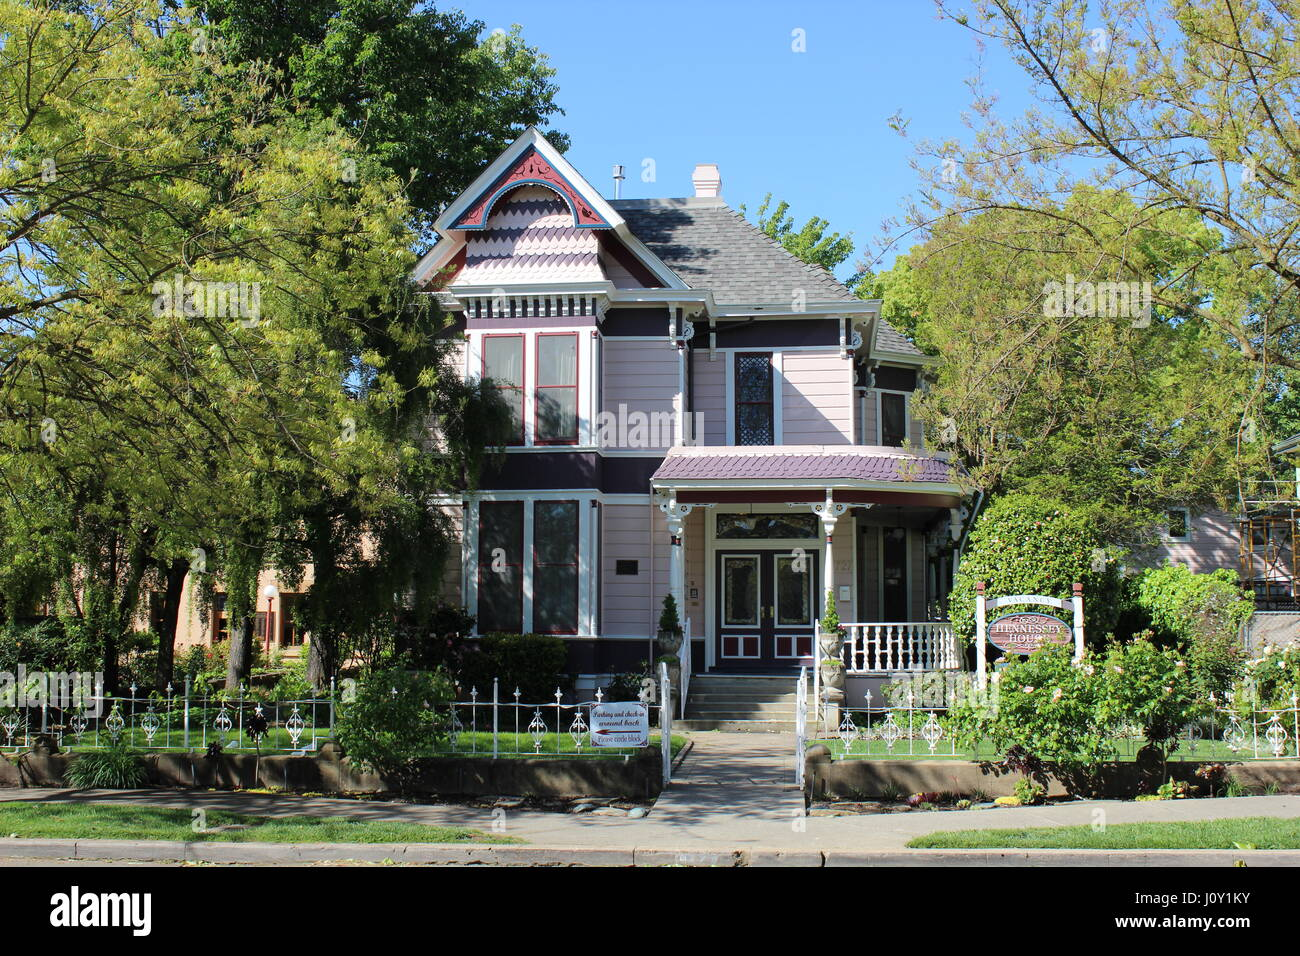 Hennessey House, Eastlake or Stick-style 1889 house in Napa, California - Stock Image